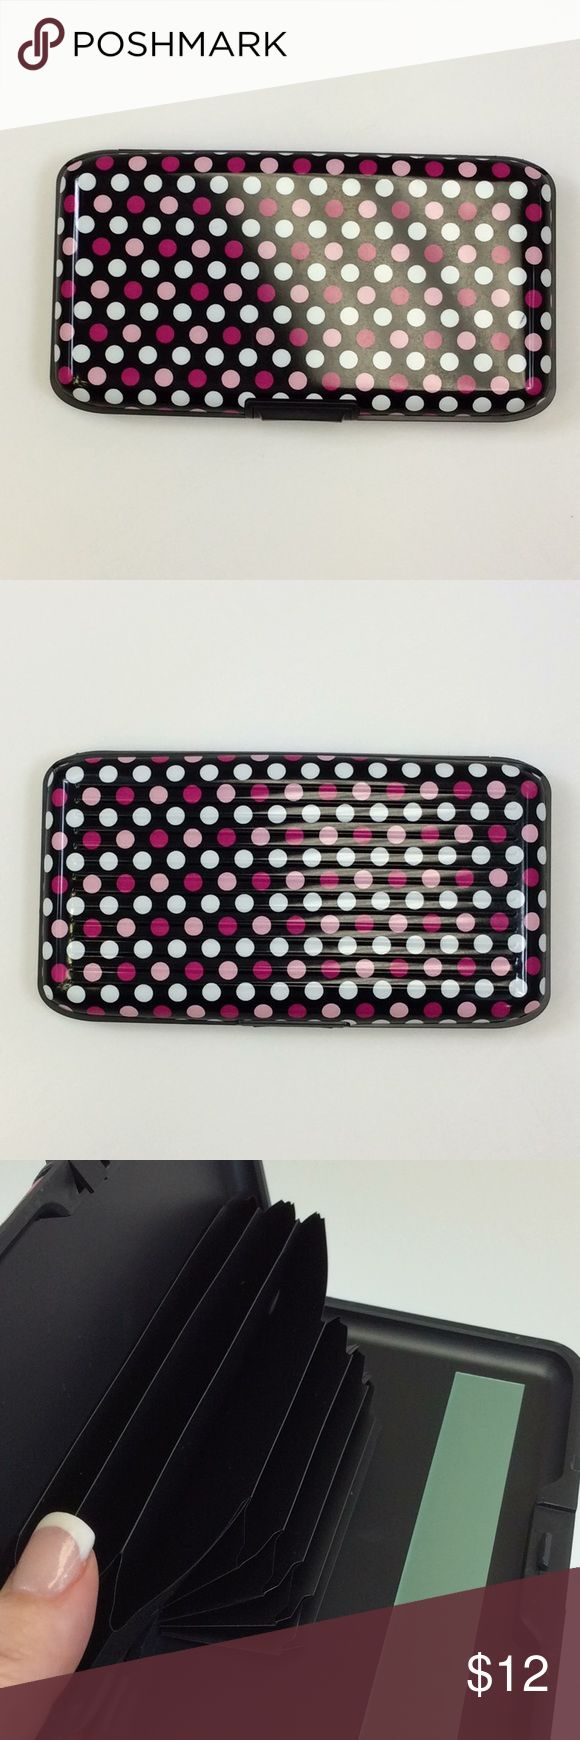 Pink Polka Dot Metal Security Wallet New in box aluminum wallet. Shields your credit cards from scanners. See pictures of box for more information. 1 available in this color. Bags Wallets